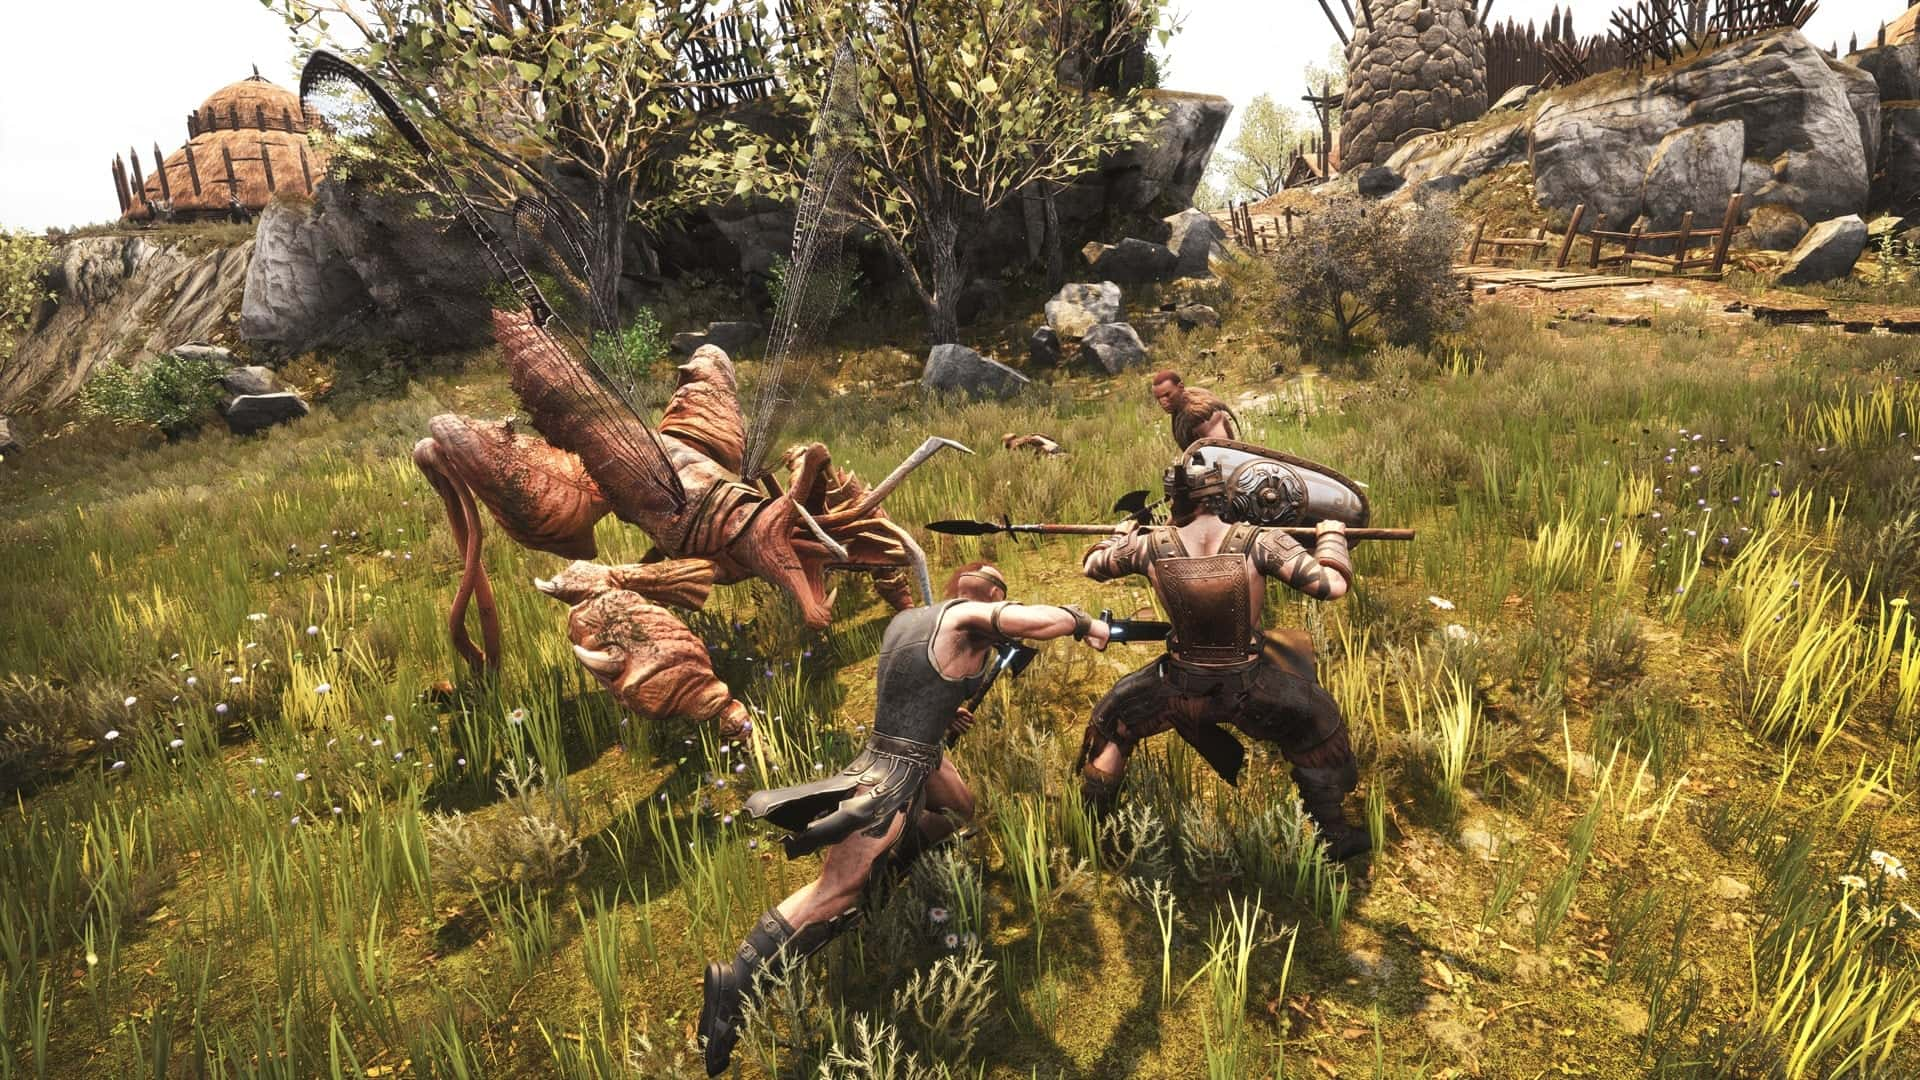 New Conan Exiles DLC Allows Taming of Pets - IndianNoob